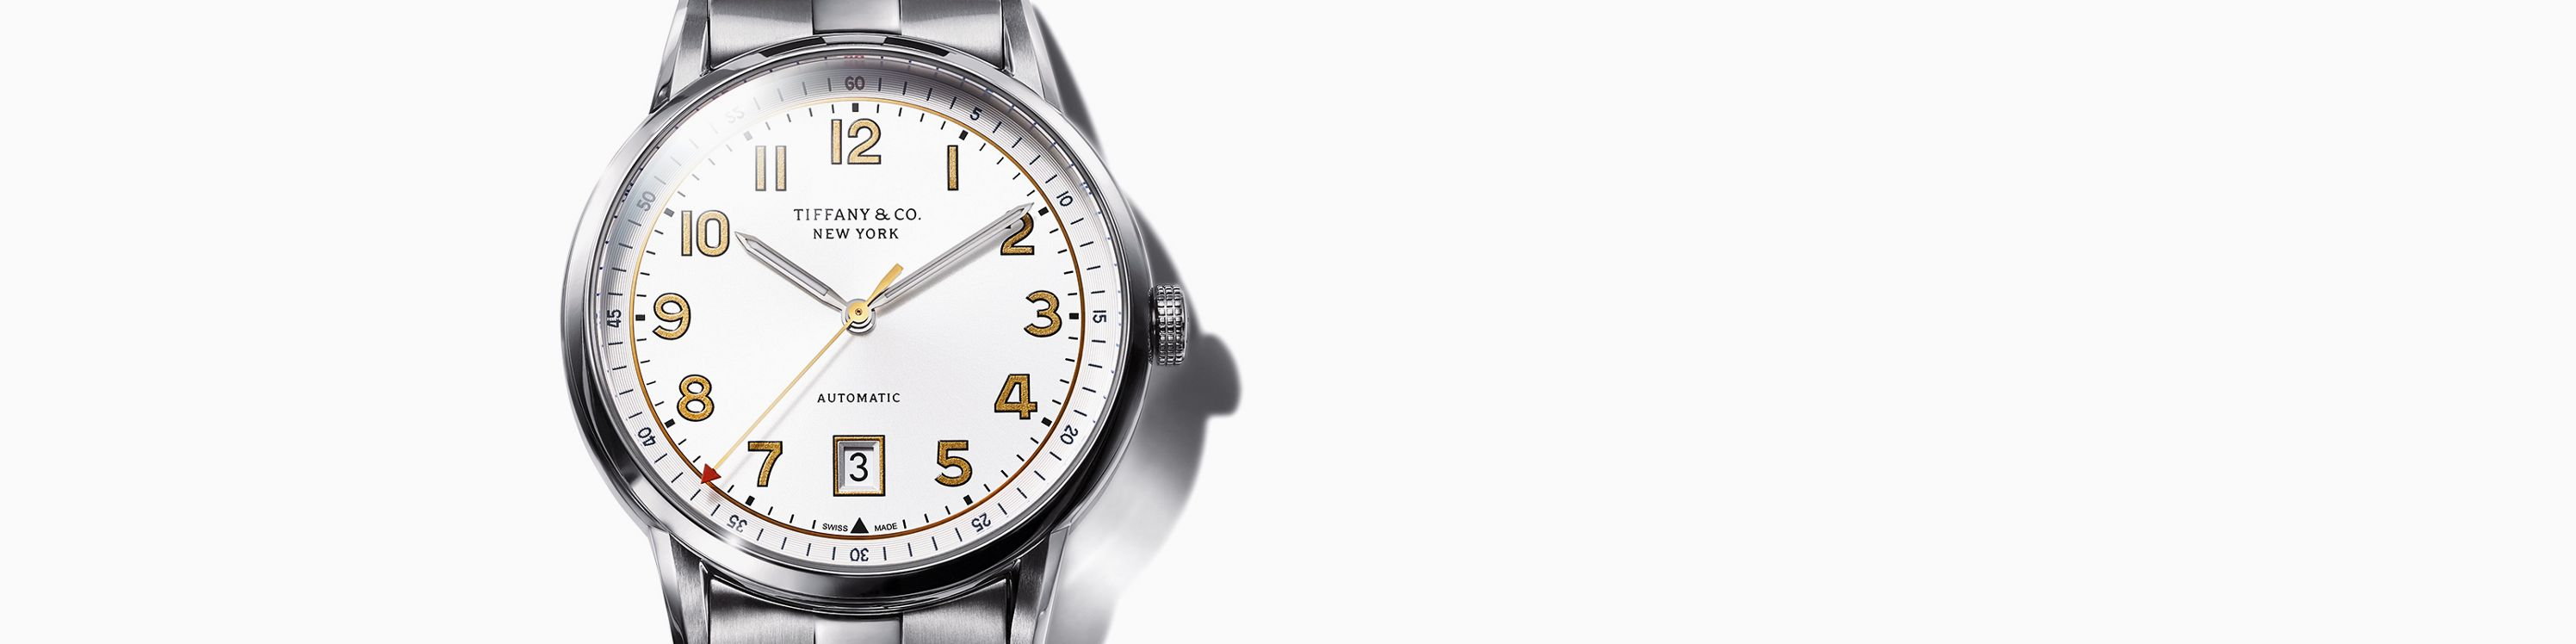 Browse Tiffany & Co. CT60 Watches